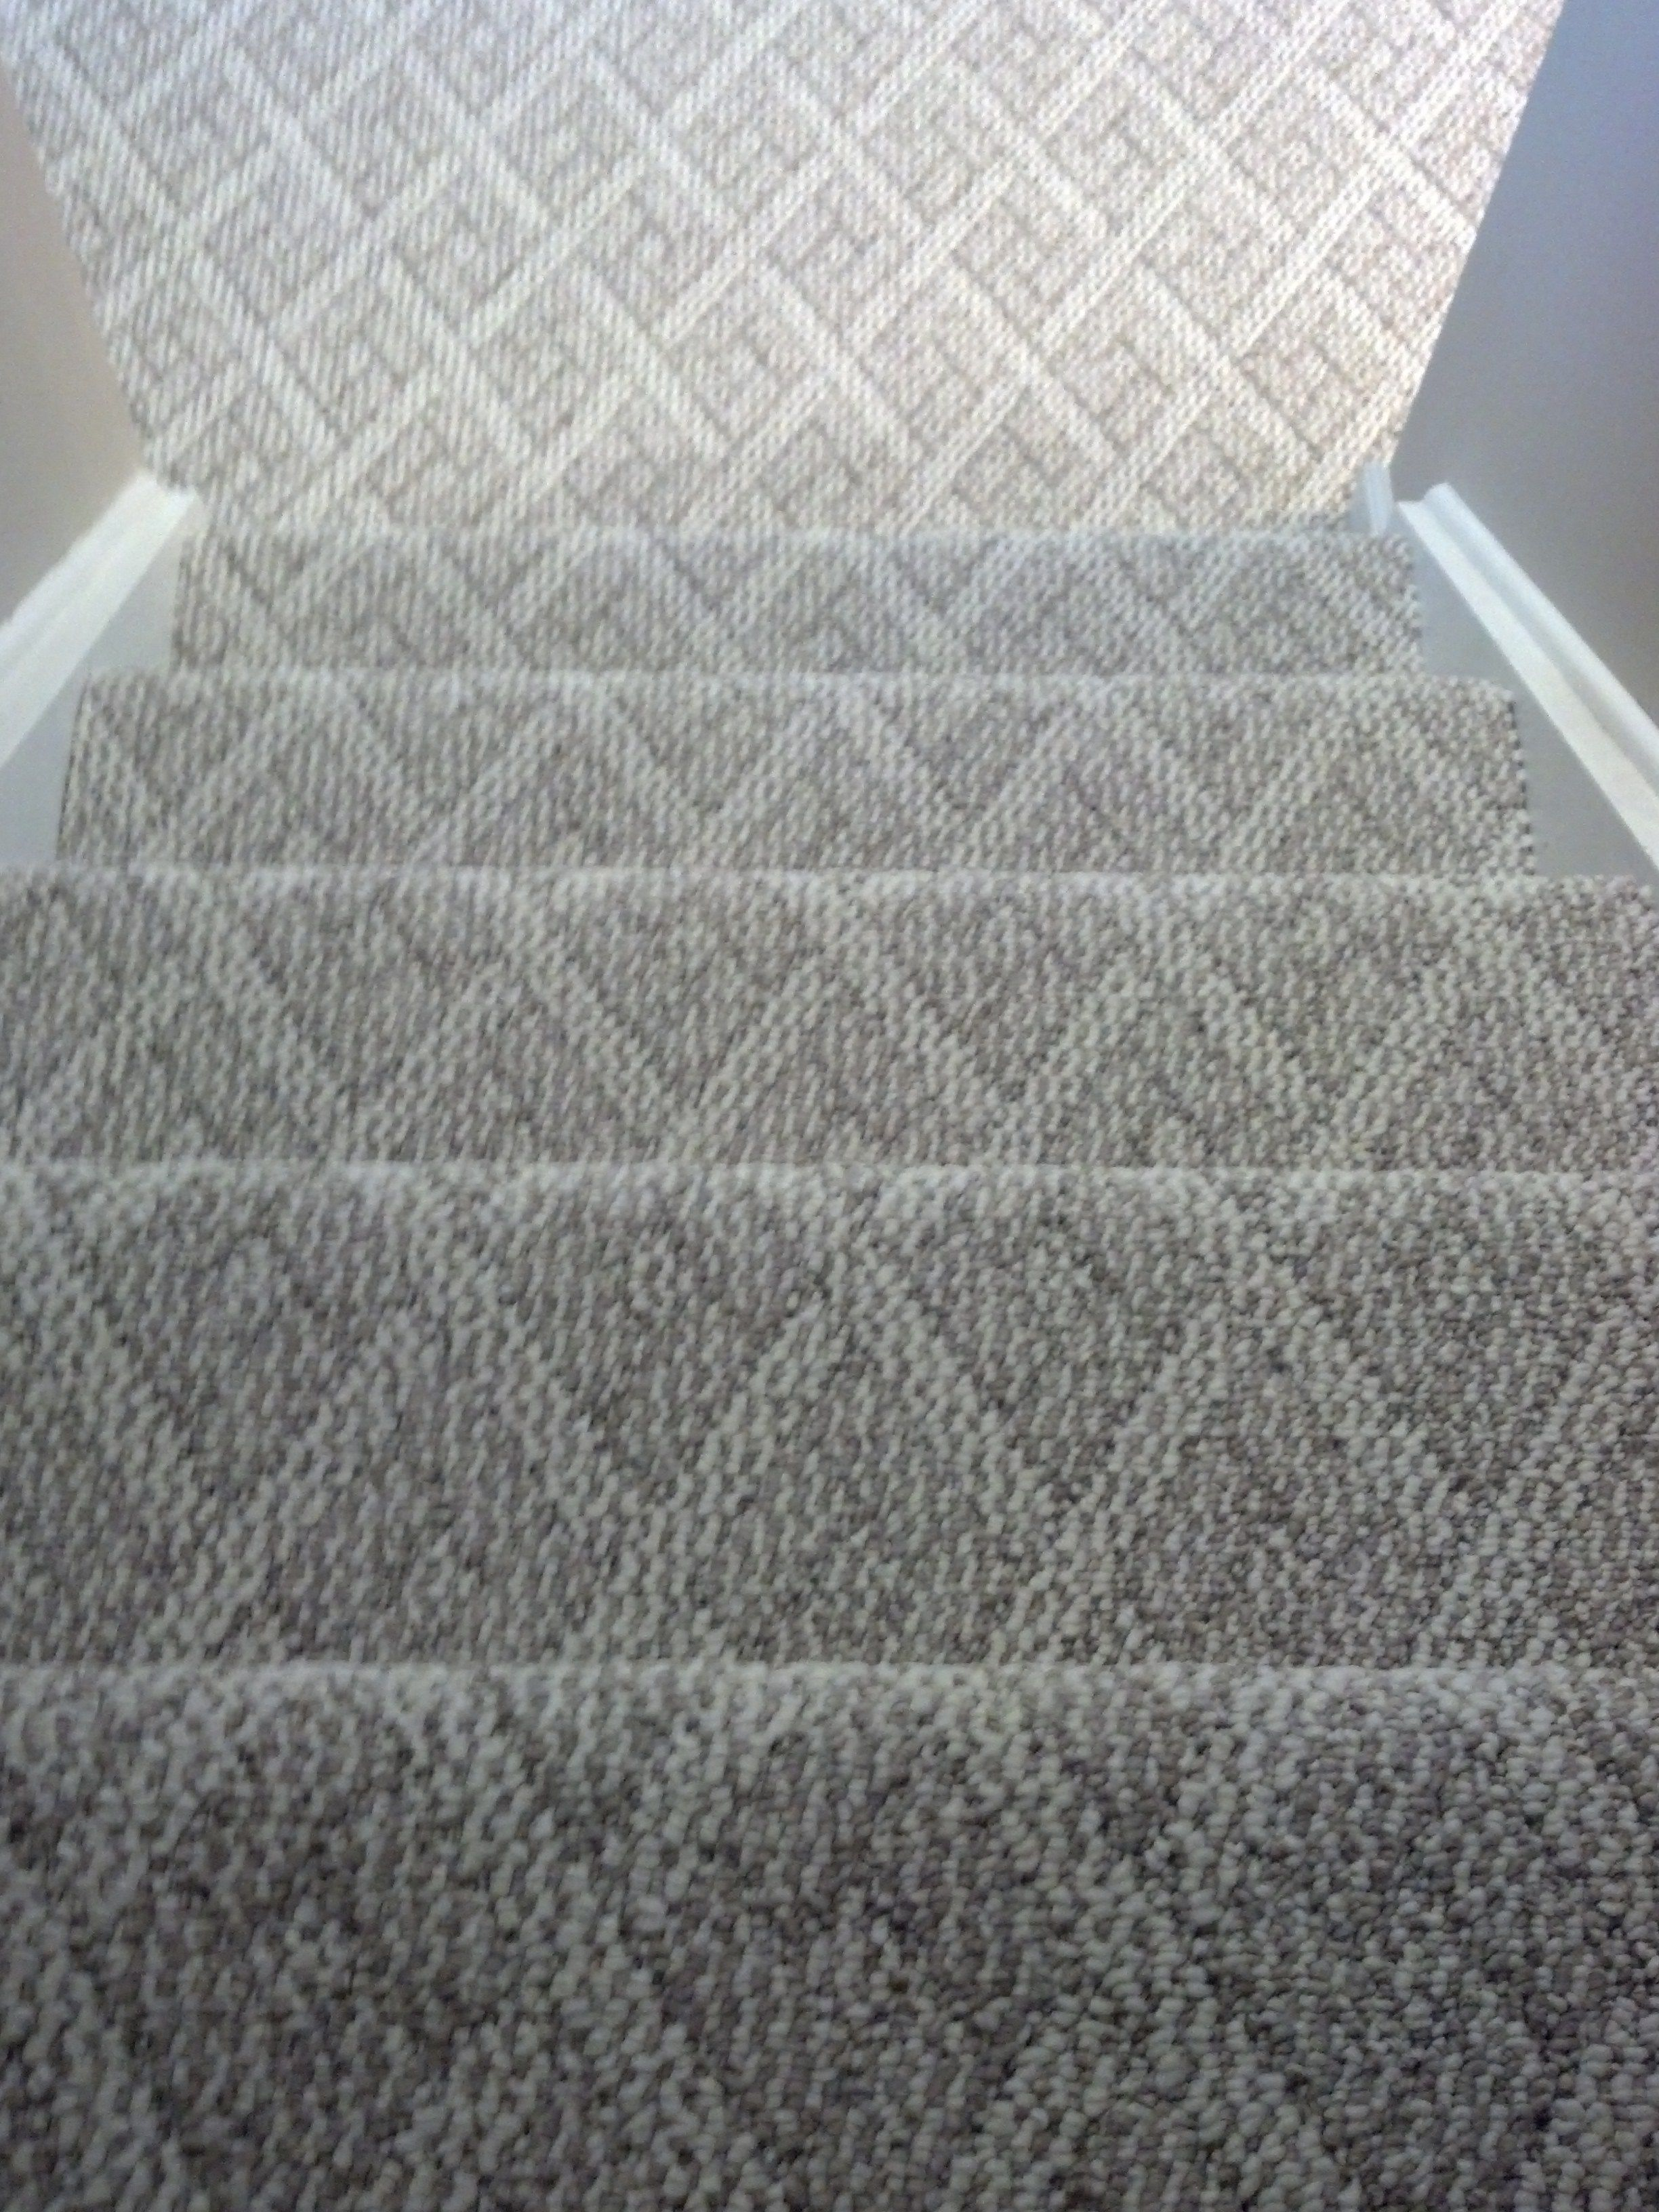 Berber carpet Cincinnati, Ohio installed on steps and basement family room. Note.....notice the pattern lining up on each step and floor.